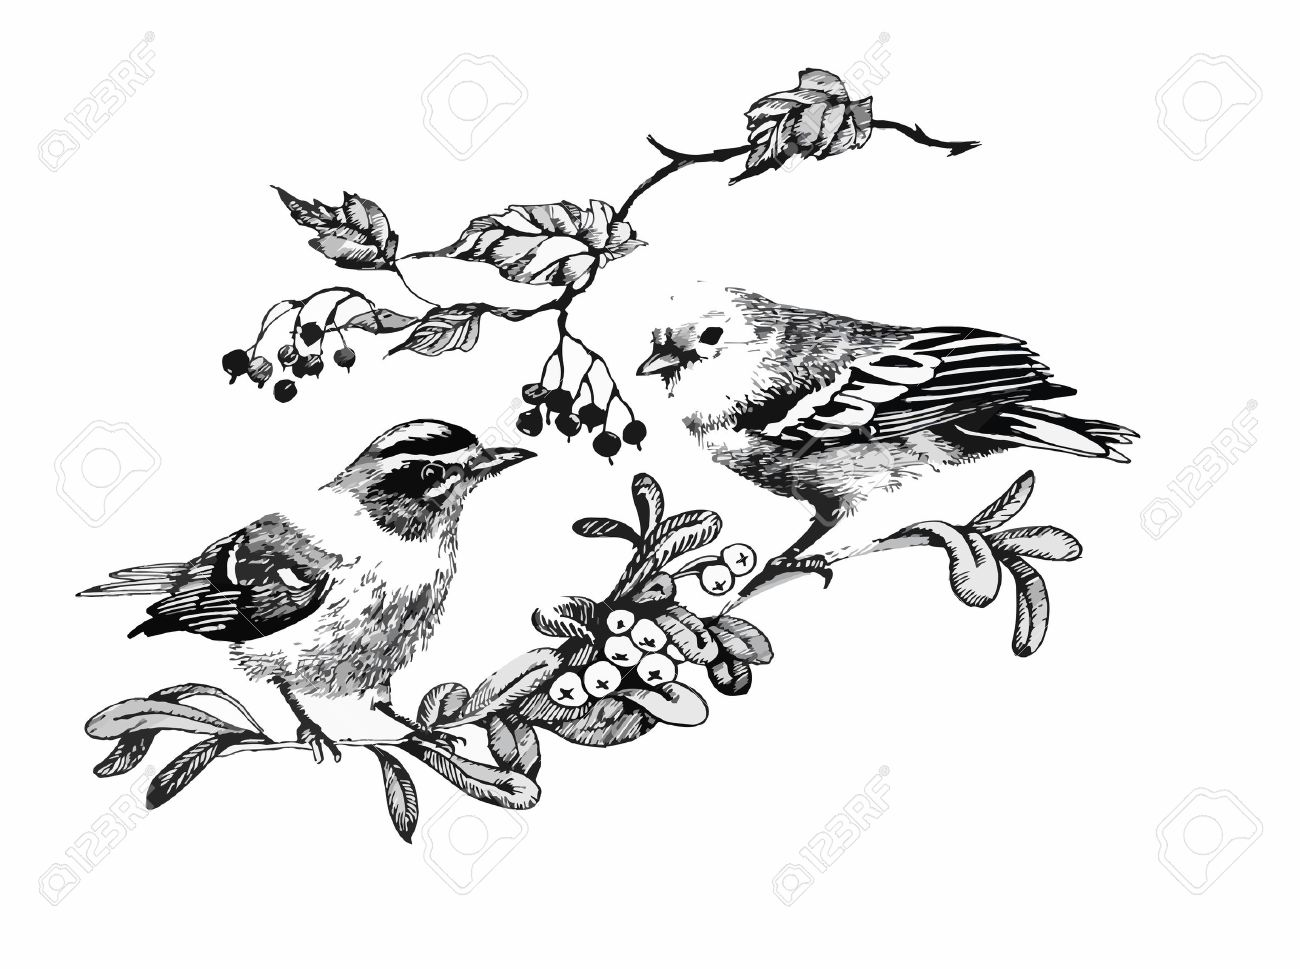 Black and white watercolor illustration of bird on twig. - 45116418